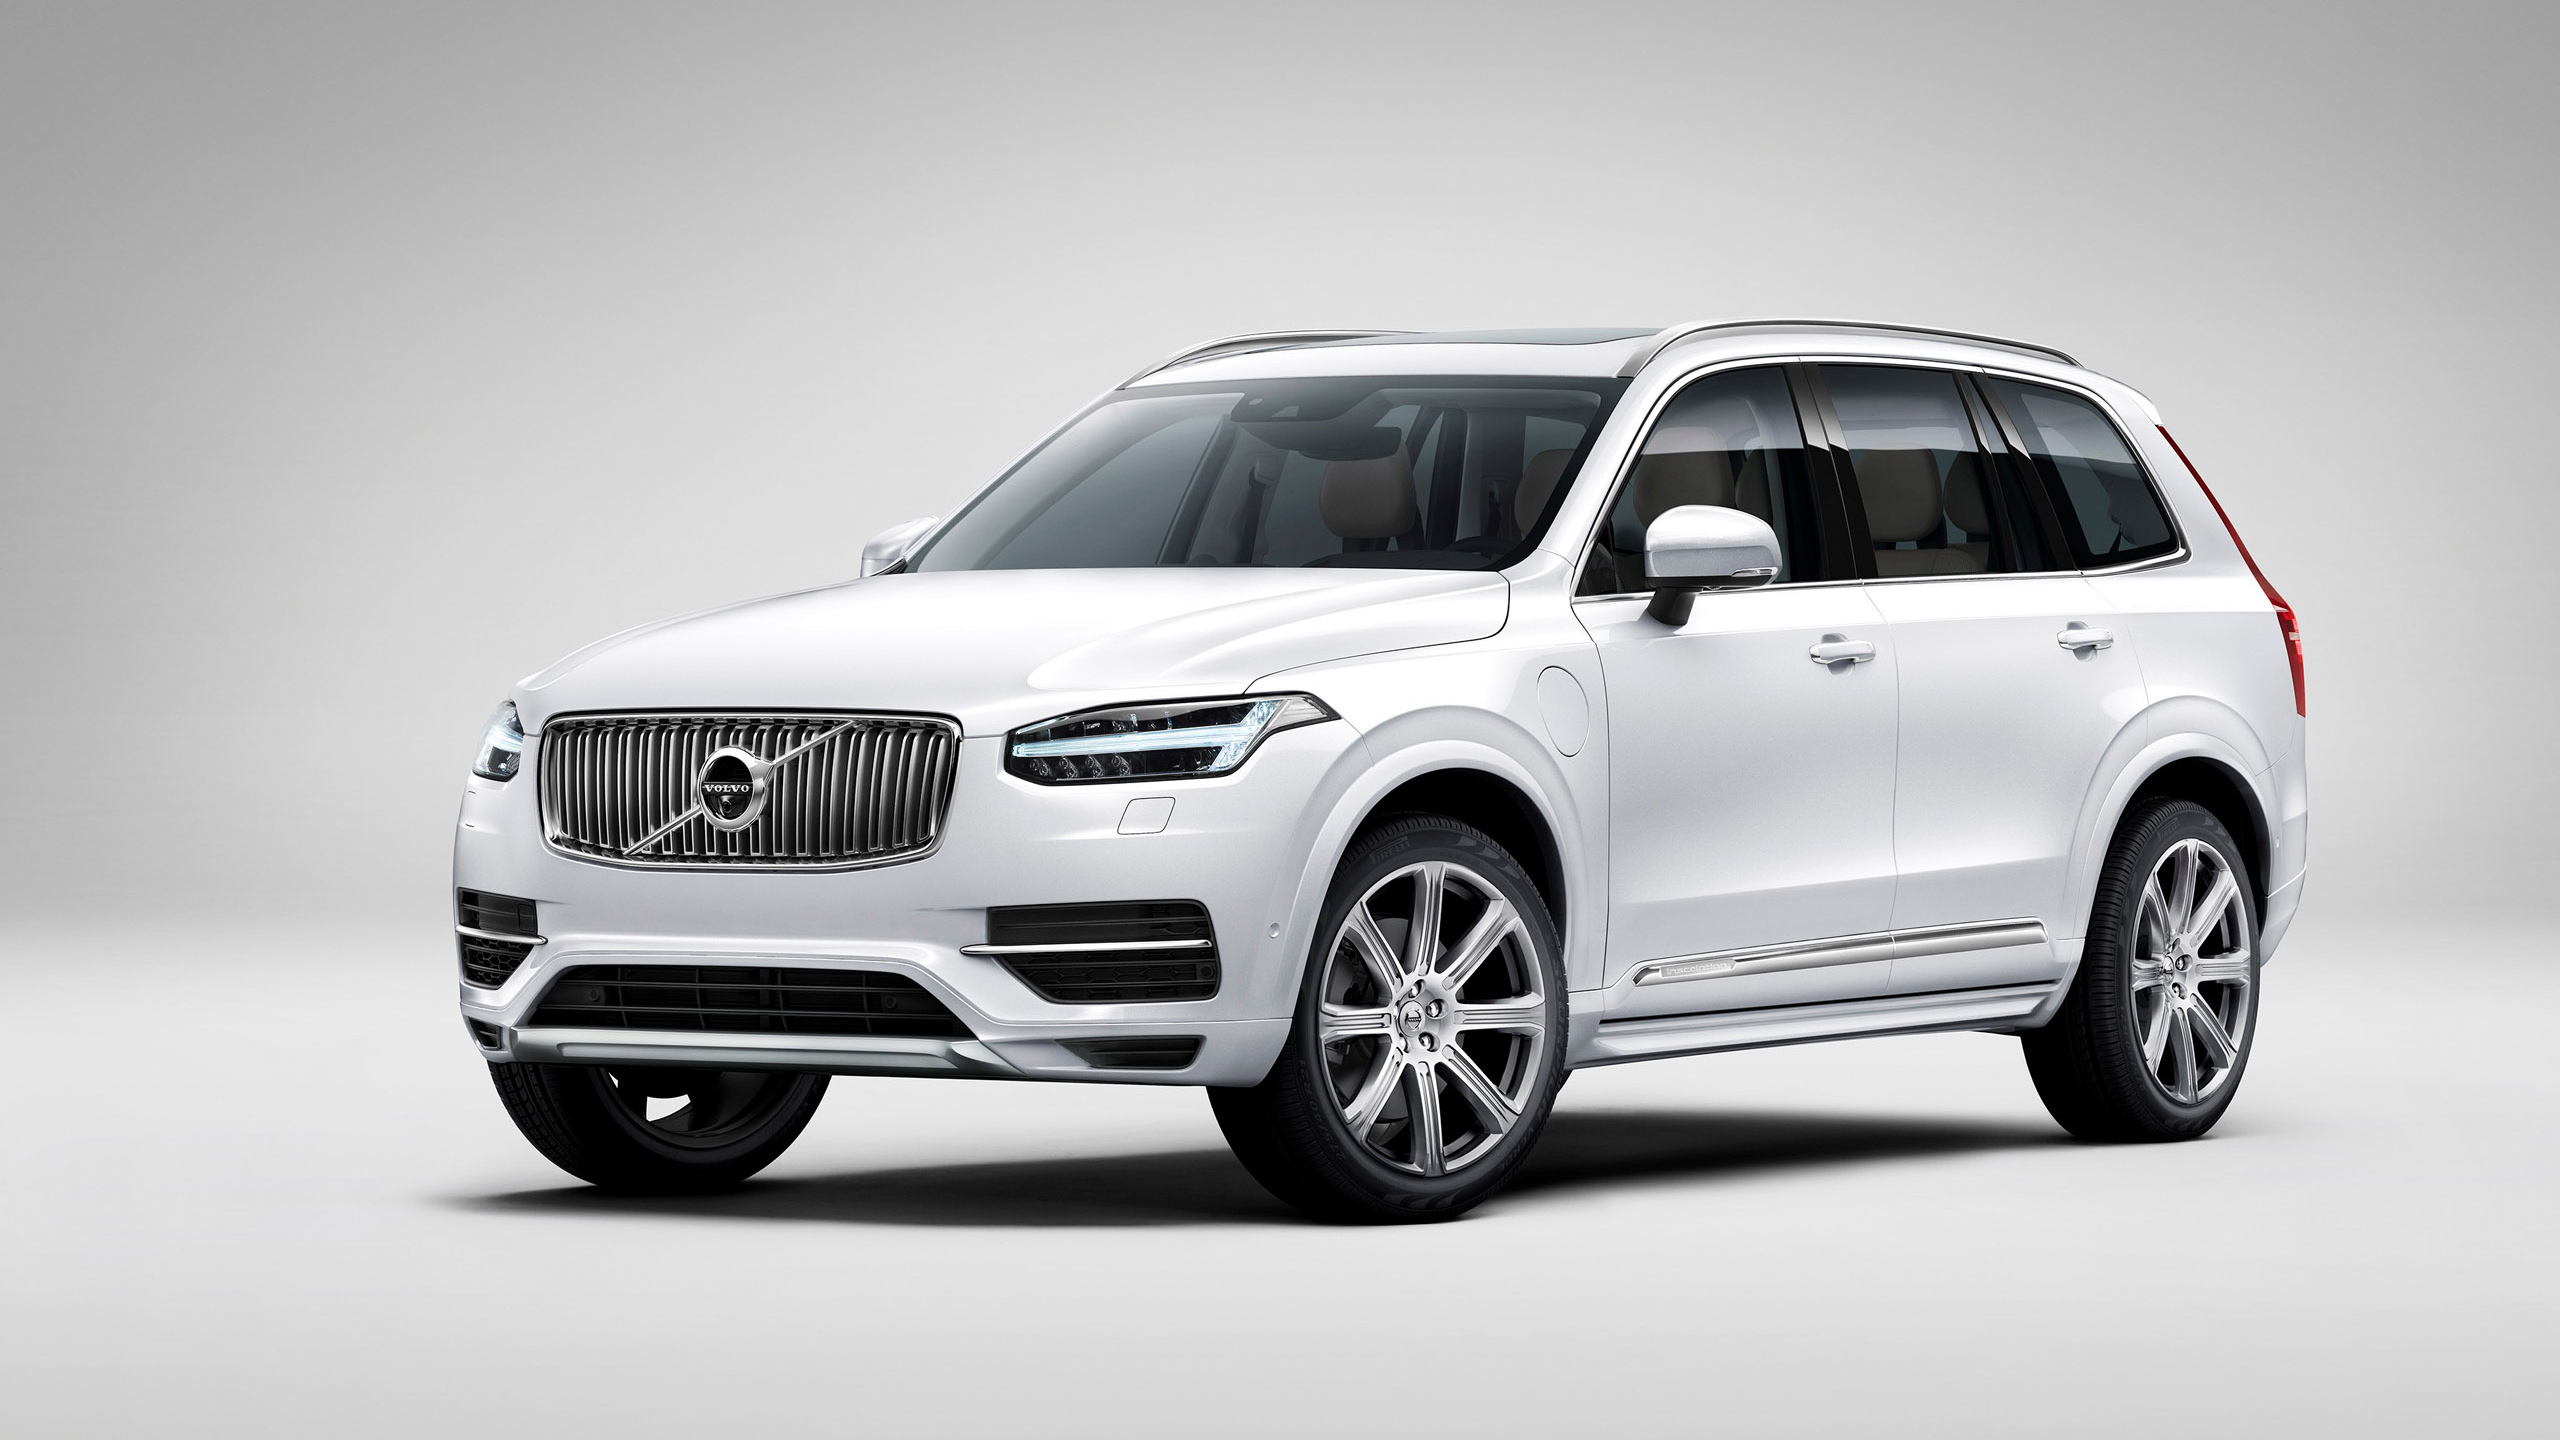 Volvo Xc90 2015 Wallpaper Hd Car Wallpapers Id 4802